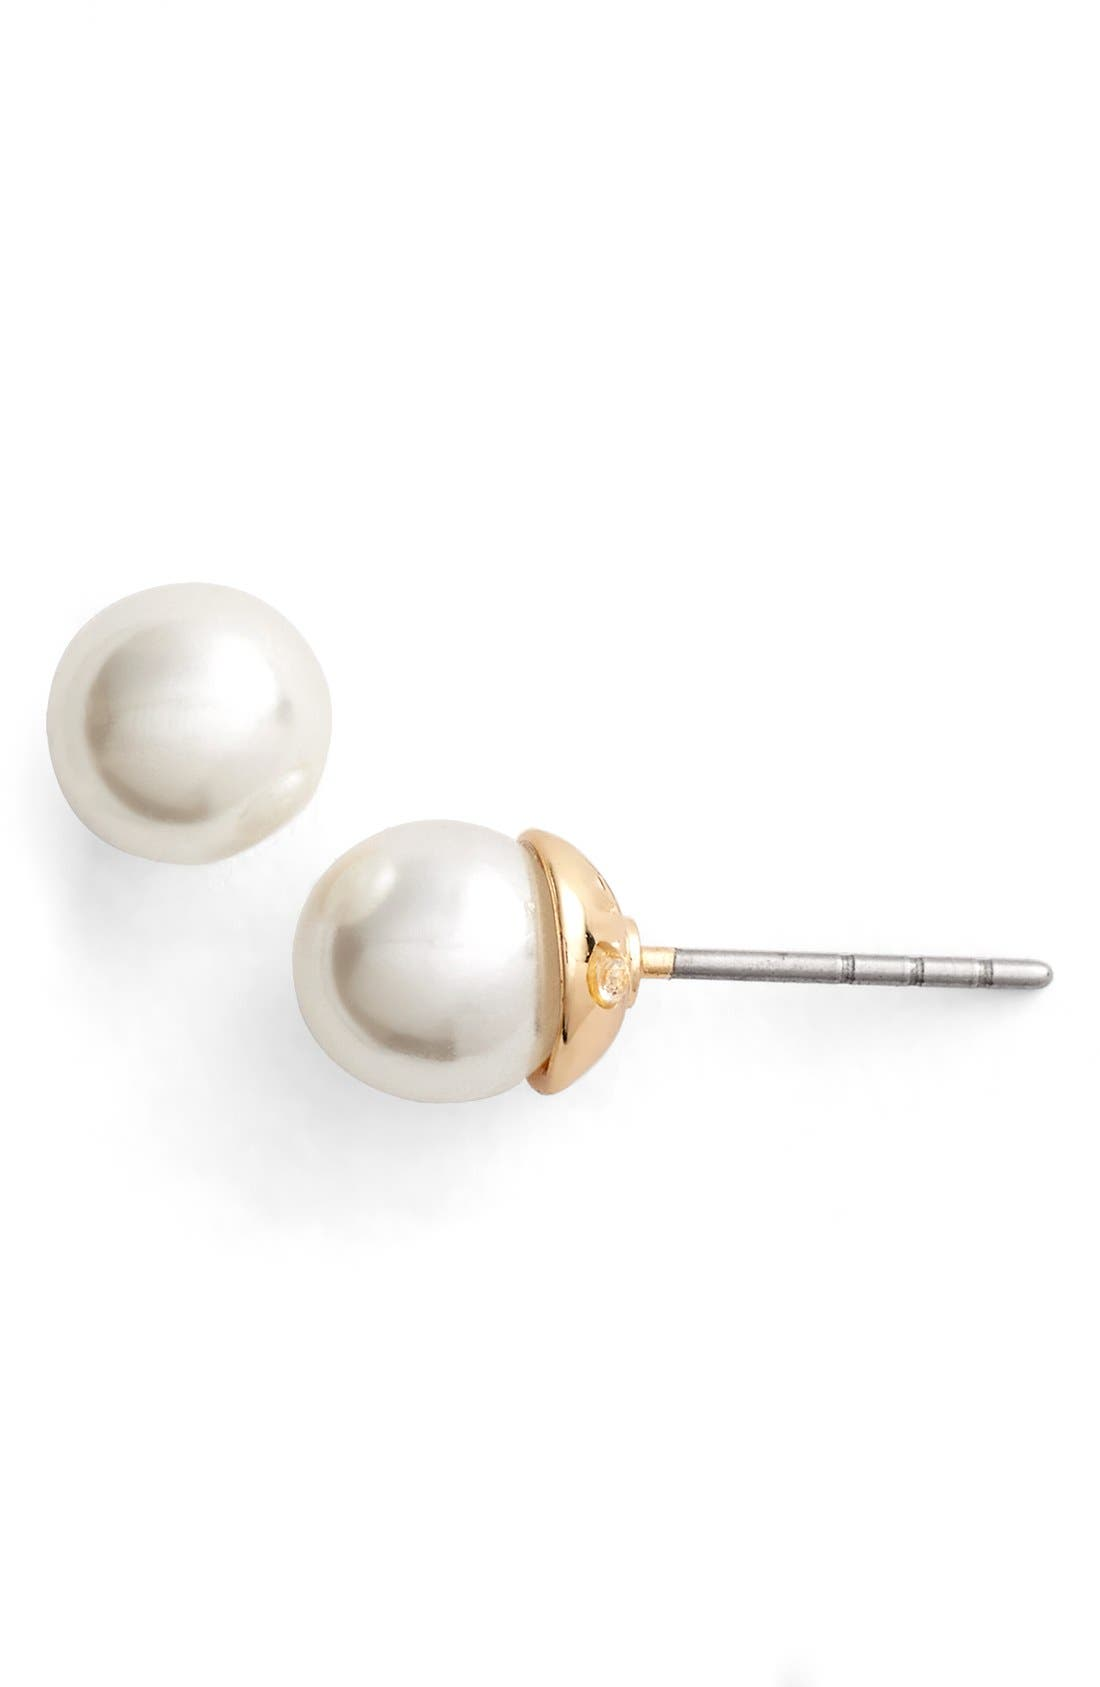 Main Image - Rebecca Minkoff 'Military Mix' Faux Pearl Stud Earrings